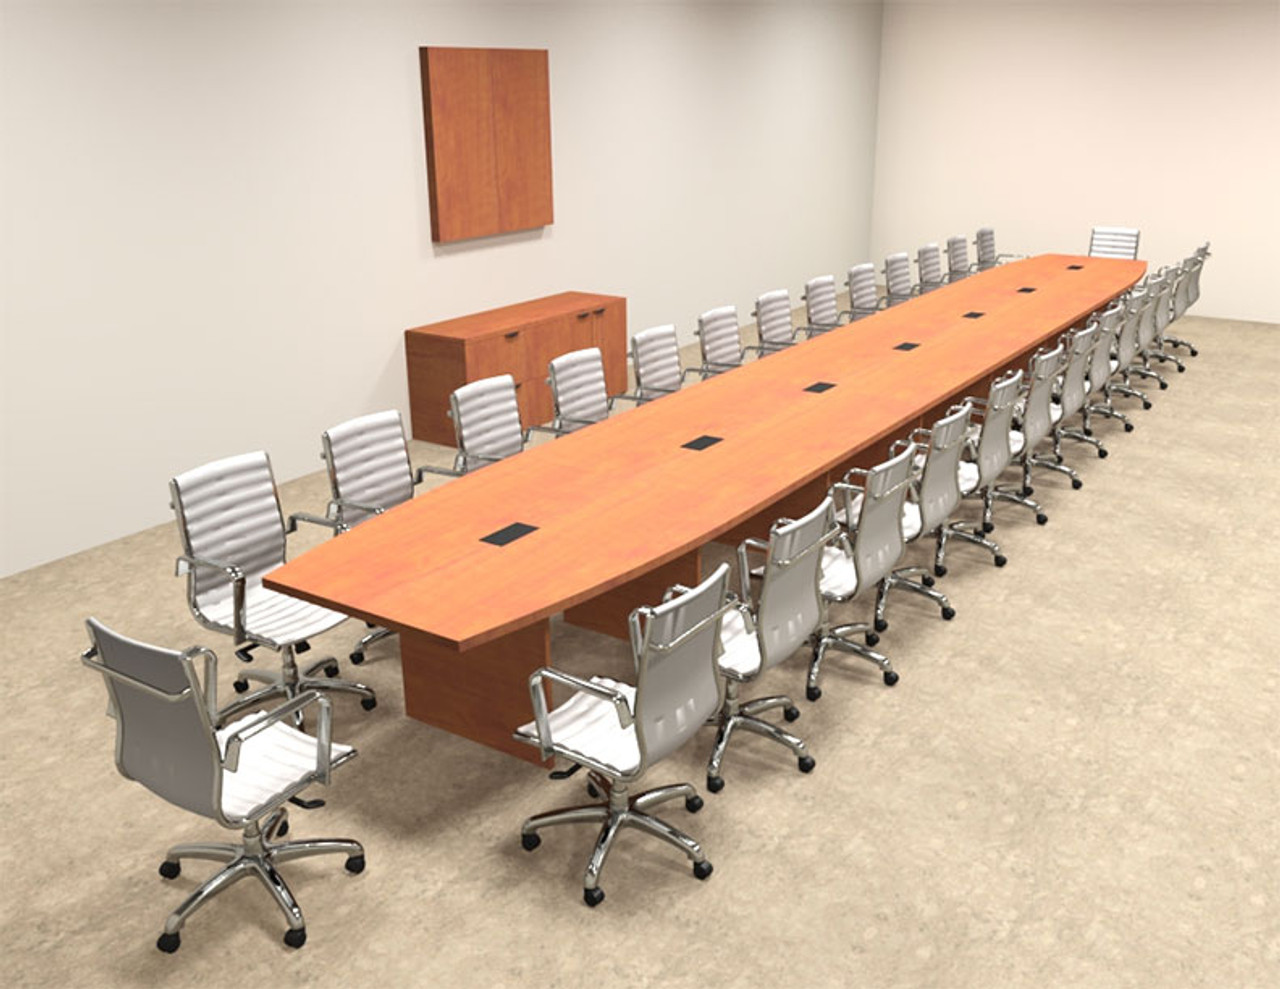 Modern Boat Shapedd Feet Conference Table OFCONC HO - 30 conference table